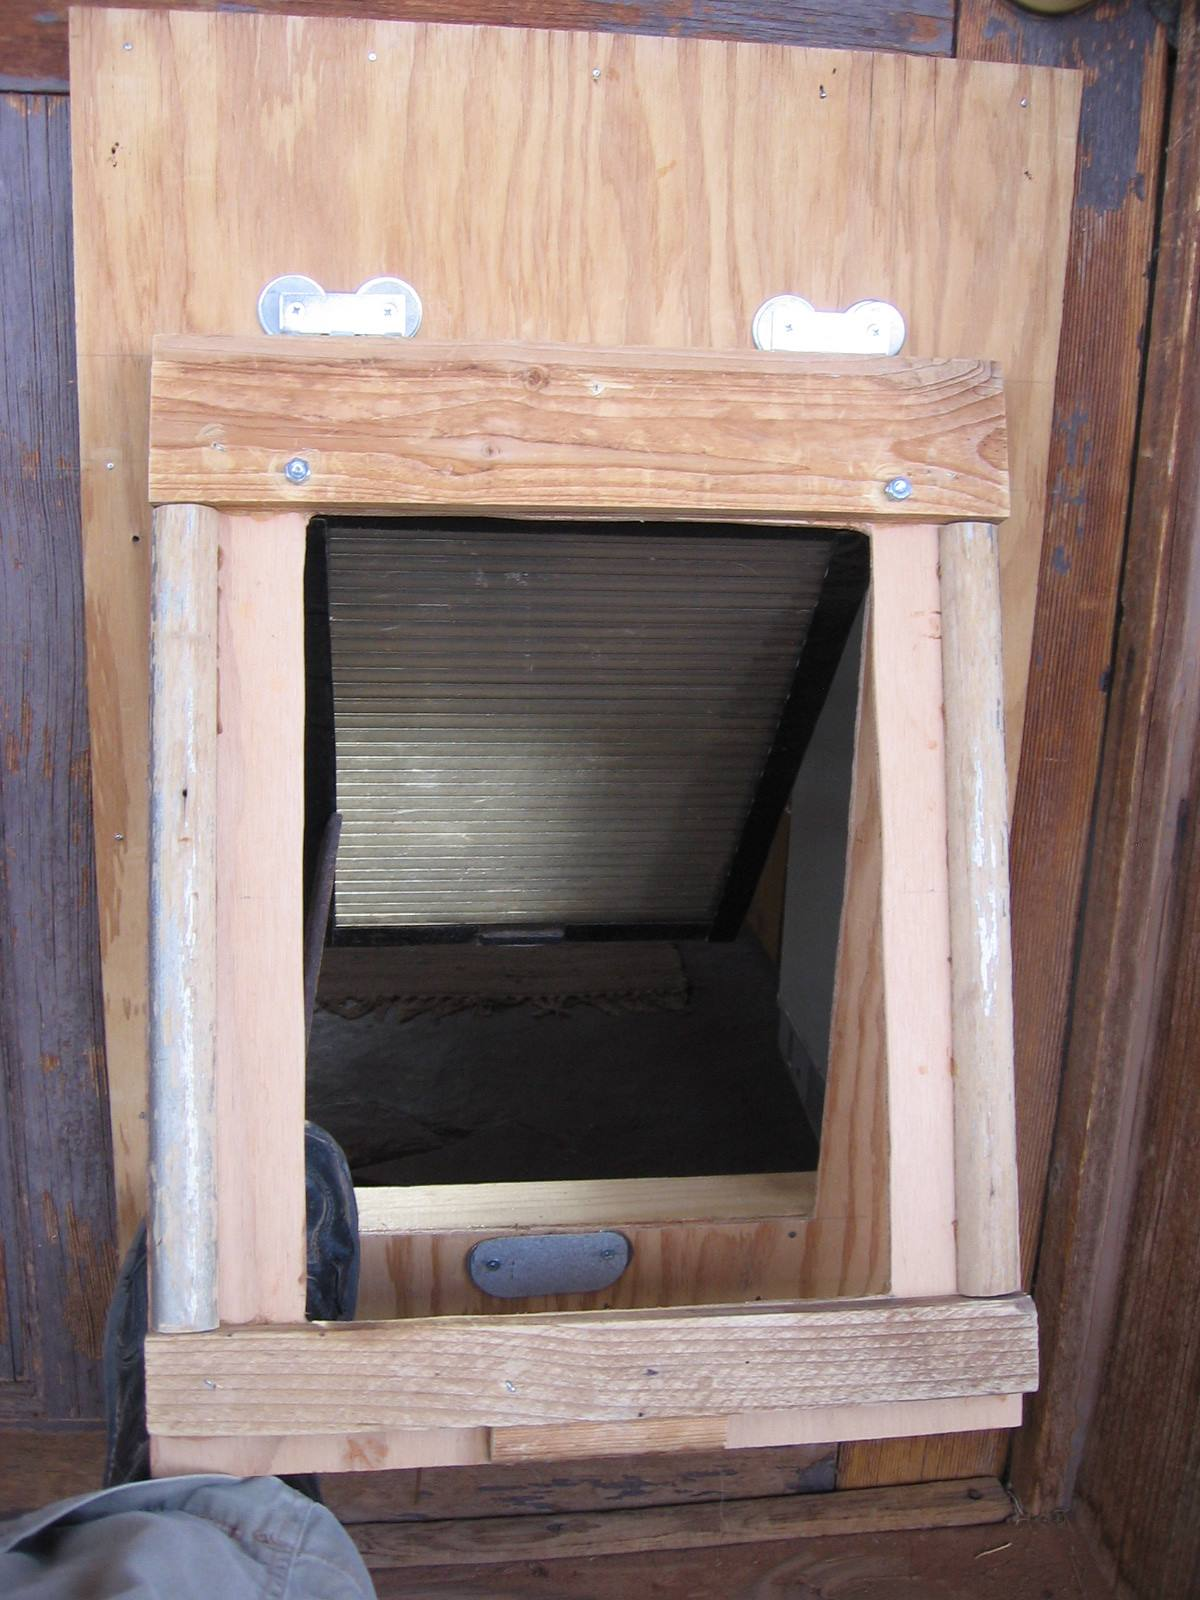 A Dog Door: The Two-Flap Solution